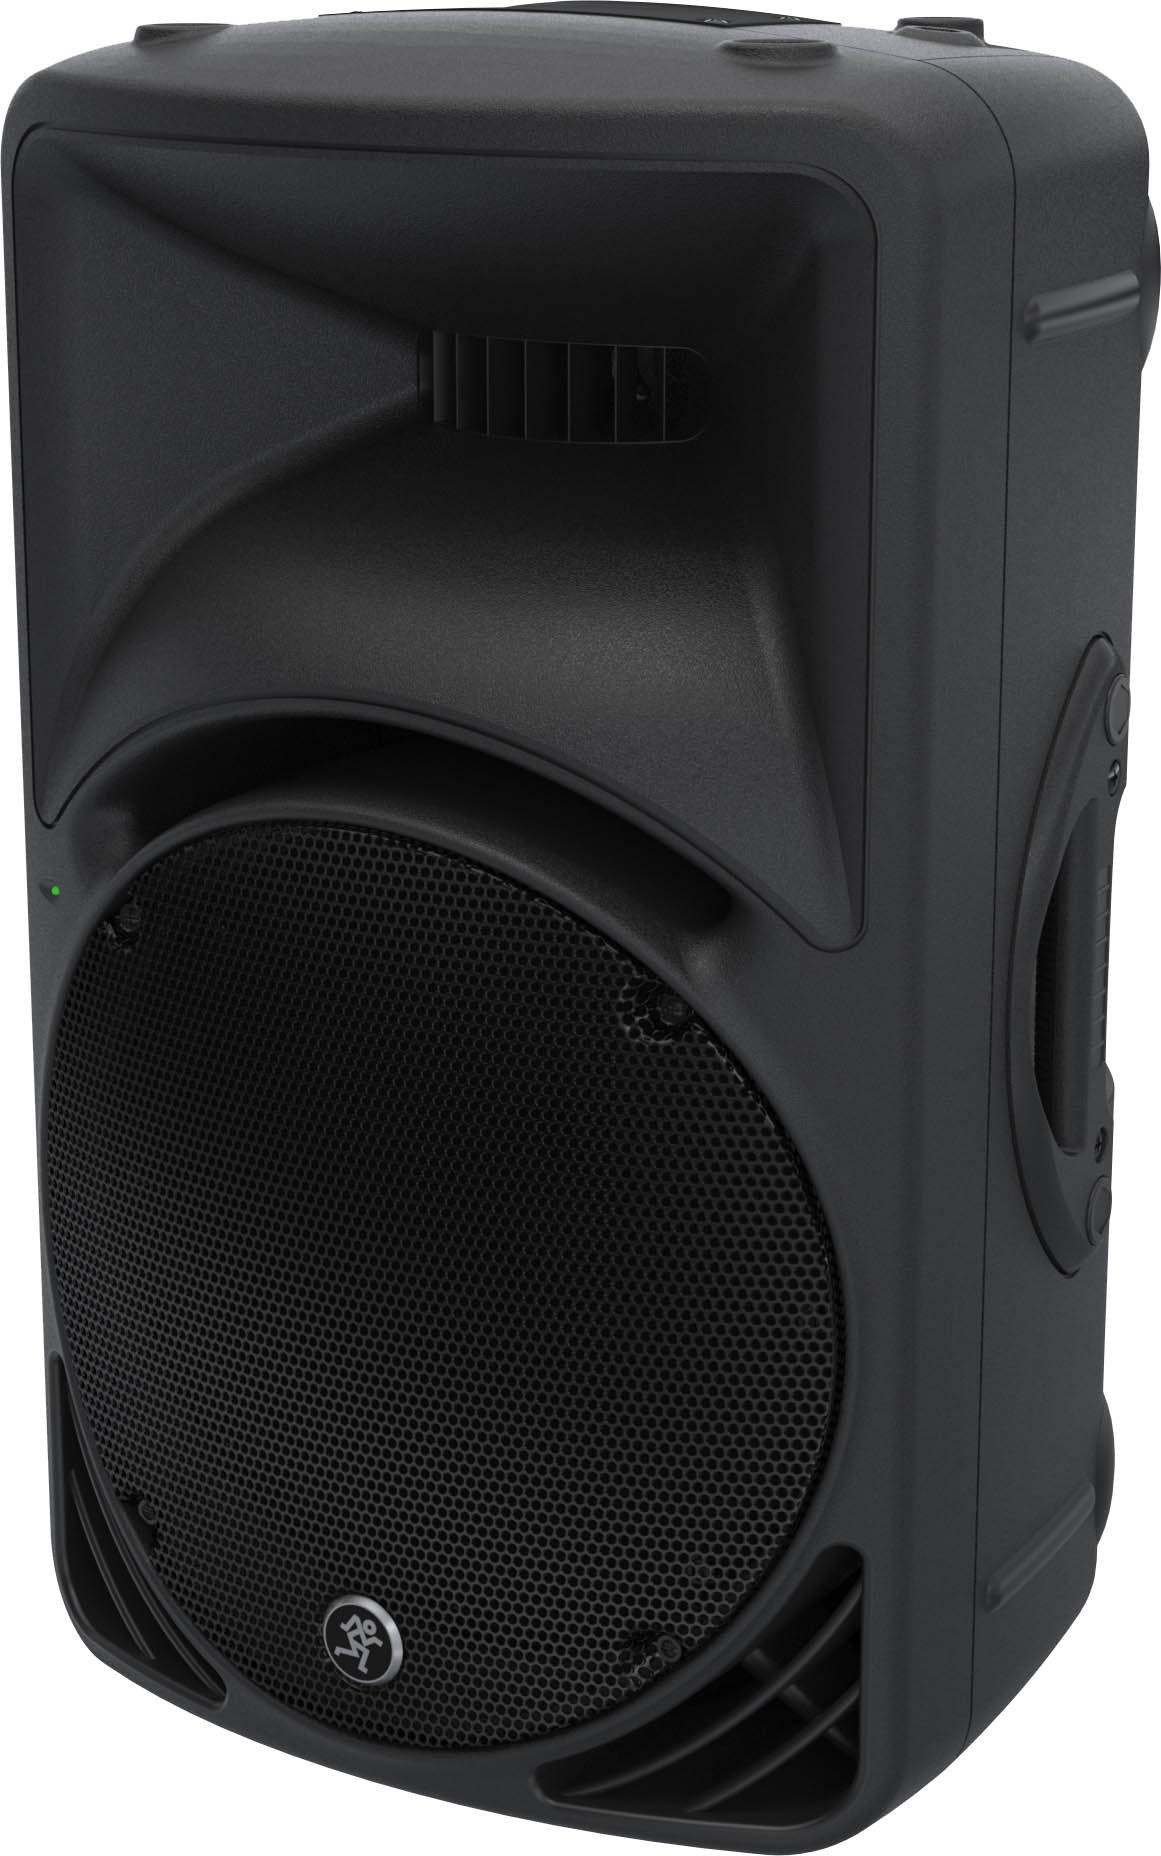 Mackie SRM450v3 1000 Watts High-Definition Portable Powered Loudspeaker